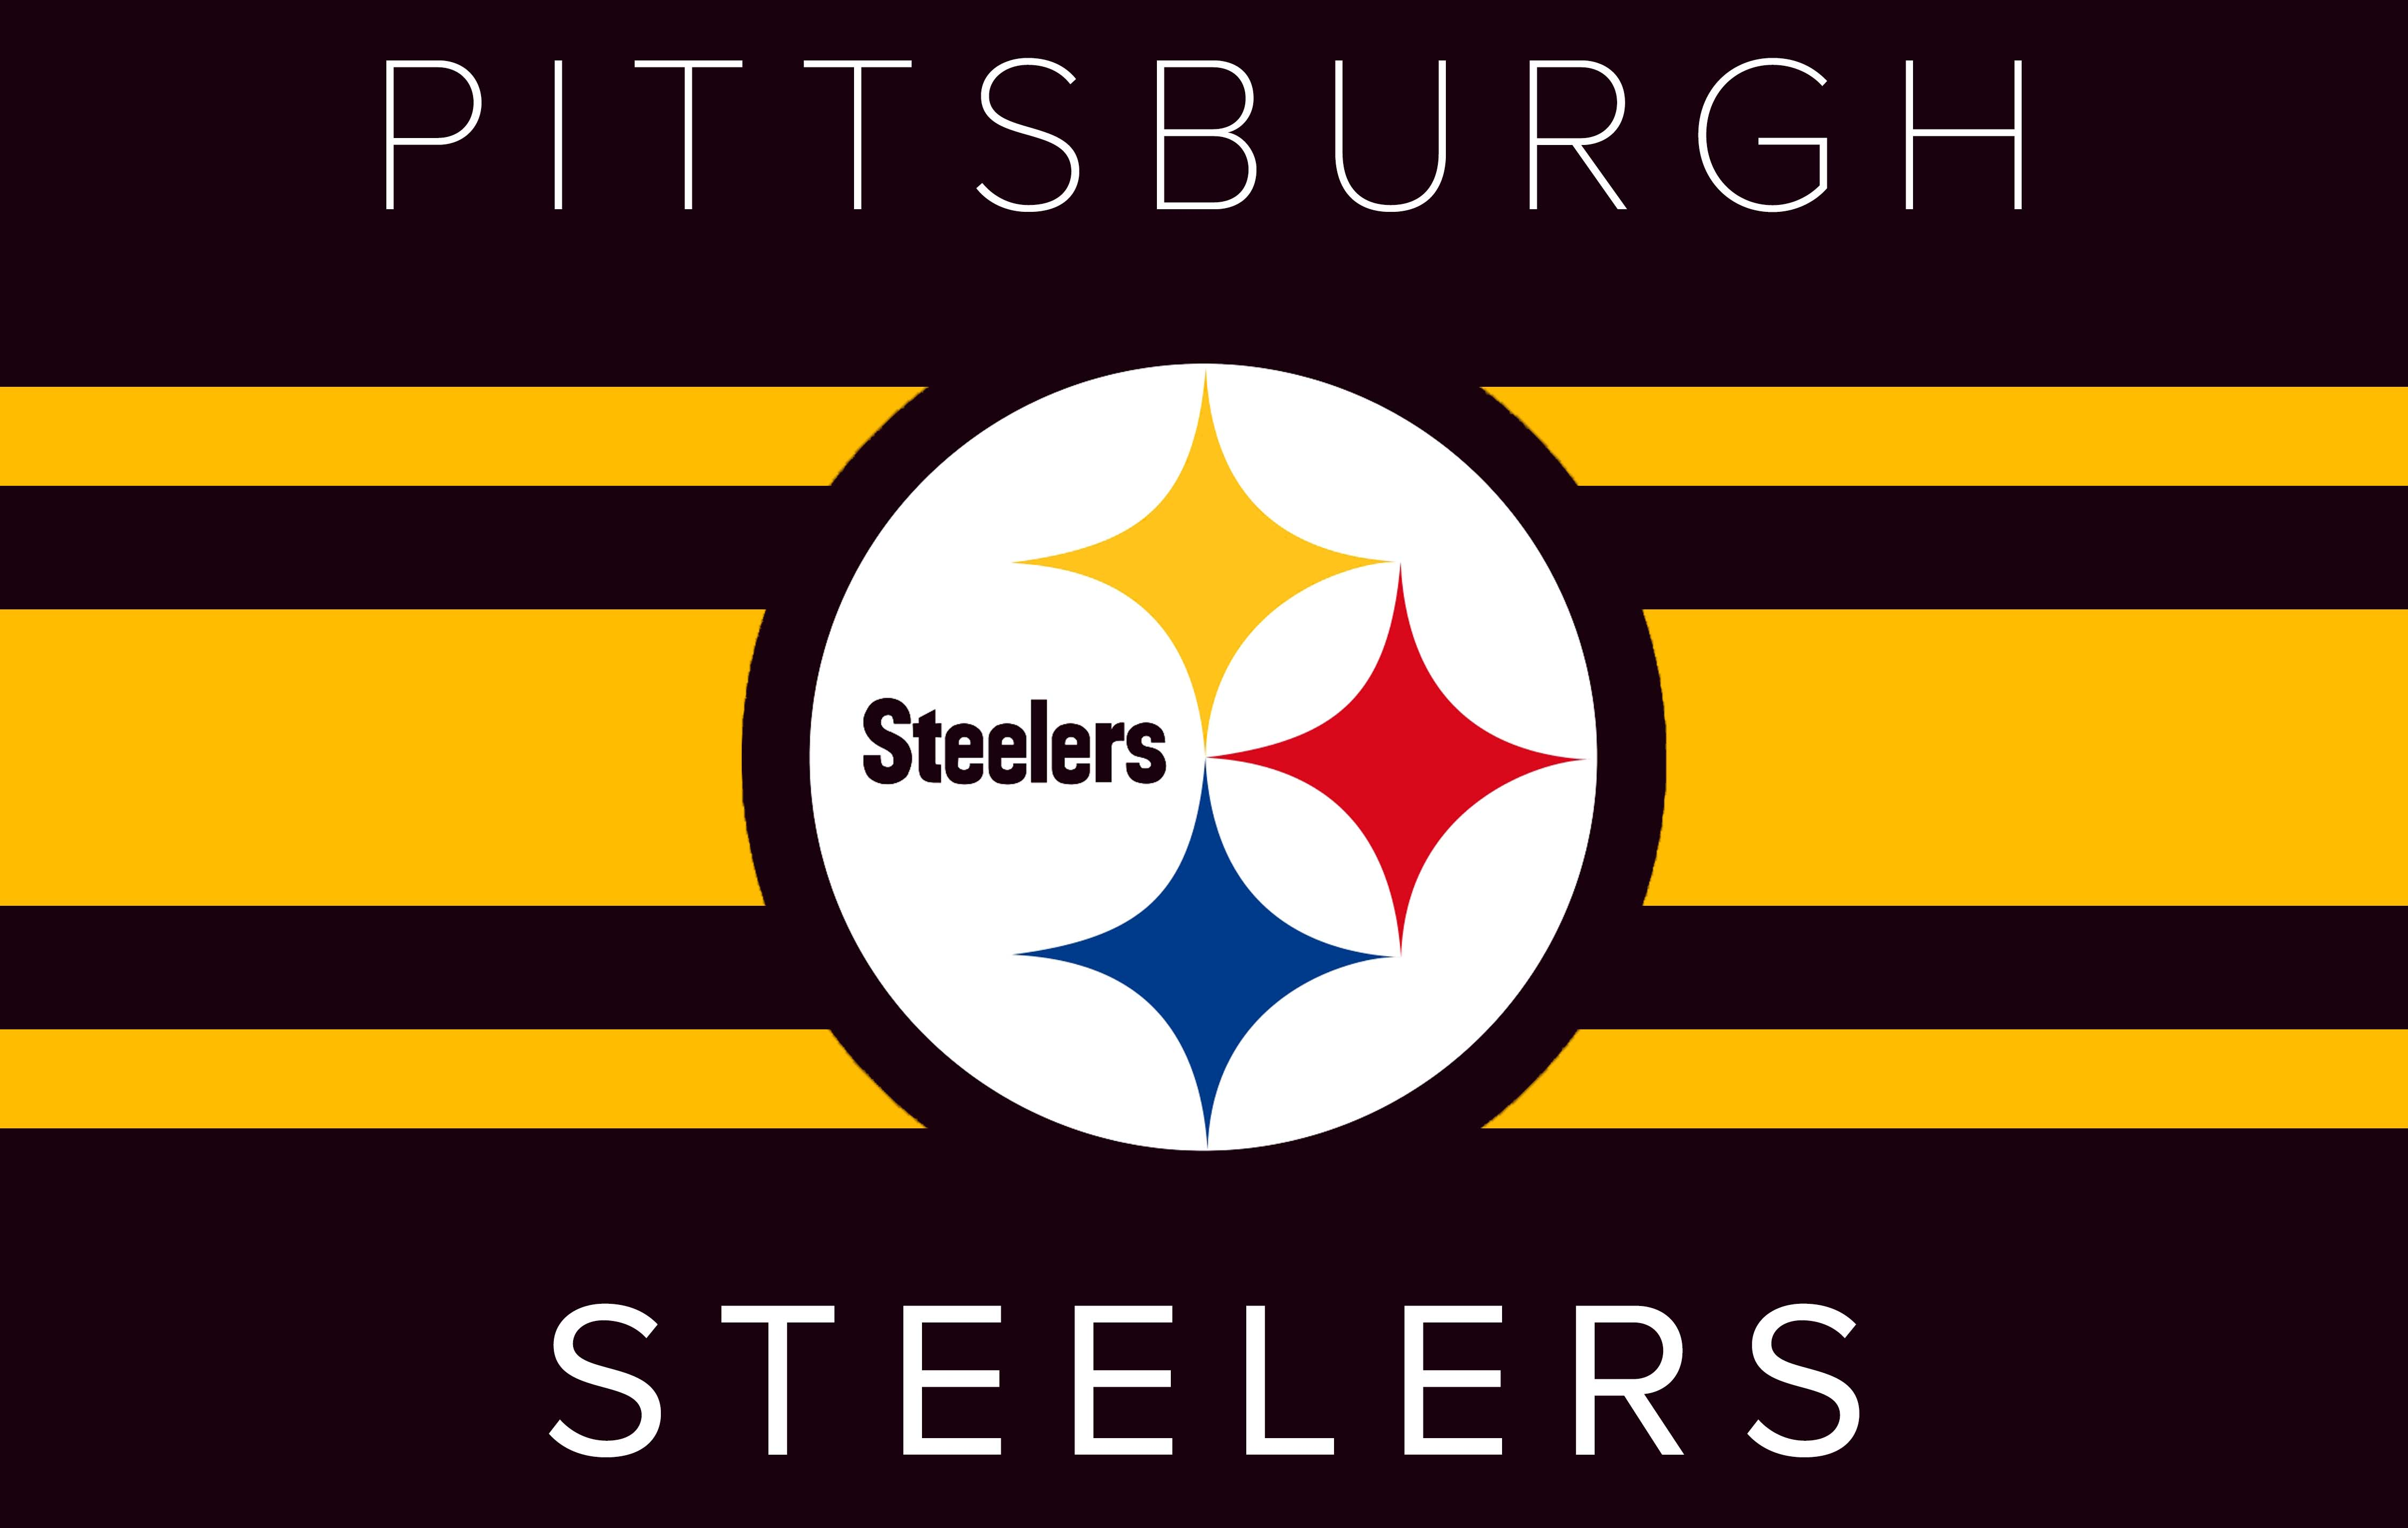 11 Best Adorable Images of Pittsburgh Steelers - MoreWallpapers.com